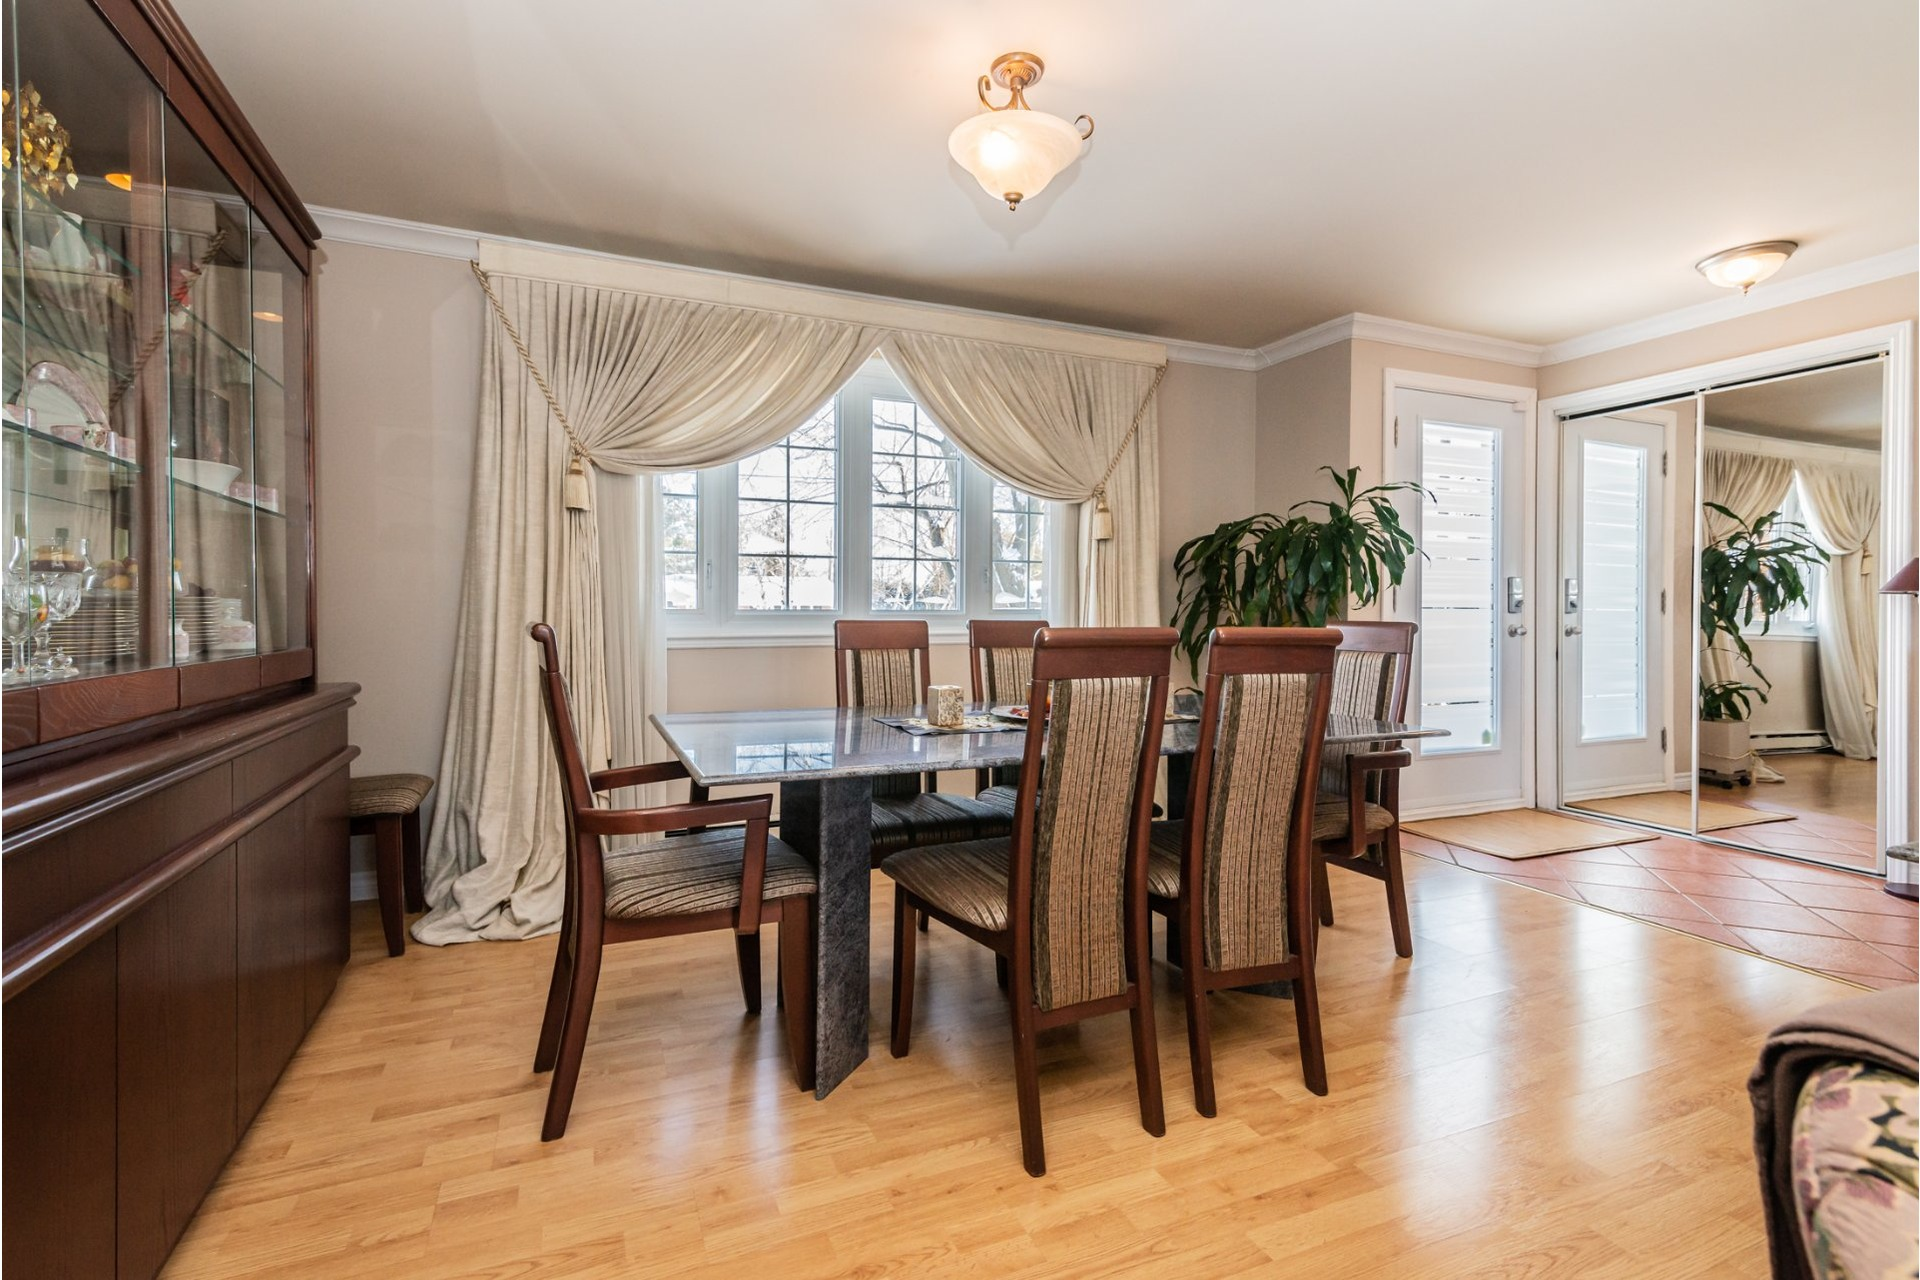 image 3 - House For sale L'Île-Bizard/Sainte-Geneviève Montréal  - 12 rooms